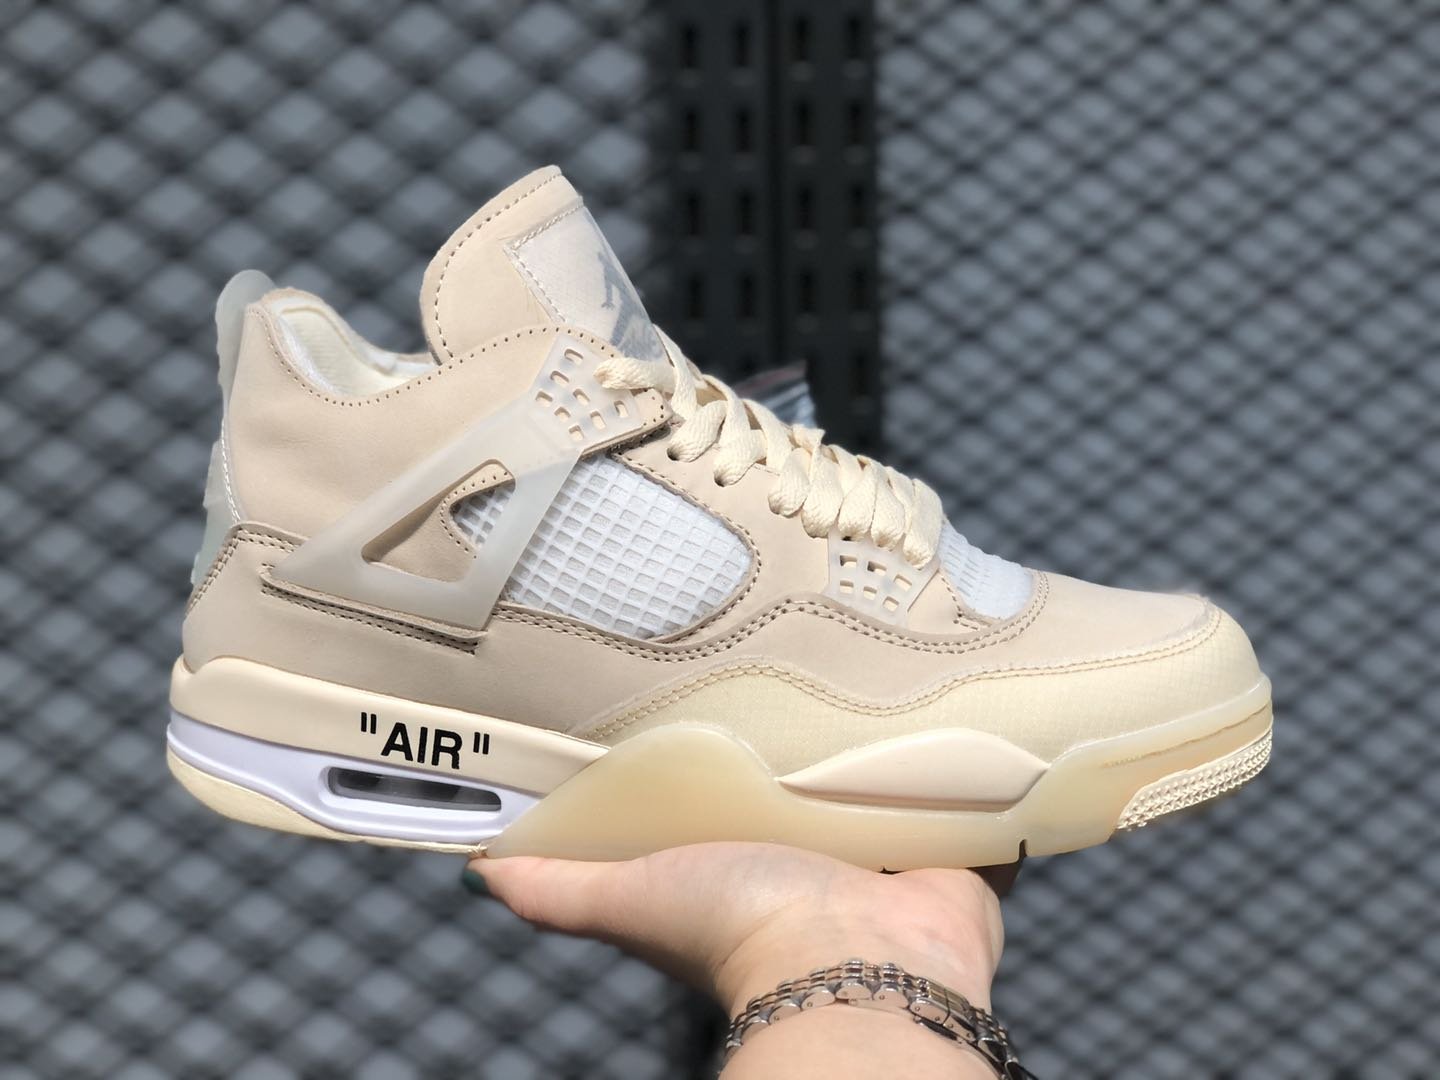 Off-White x Air Jordan 4 Retro Sail Muslin White/Black CV9388 Sale